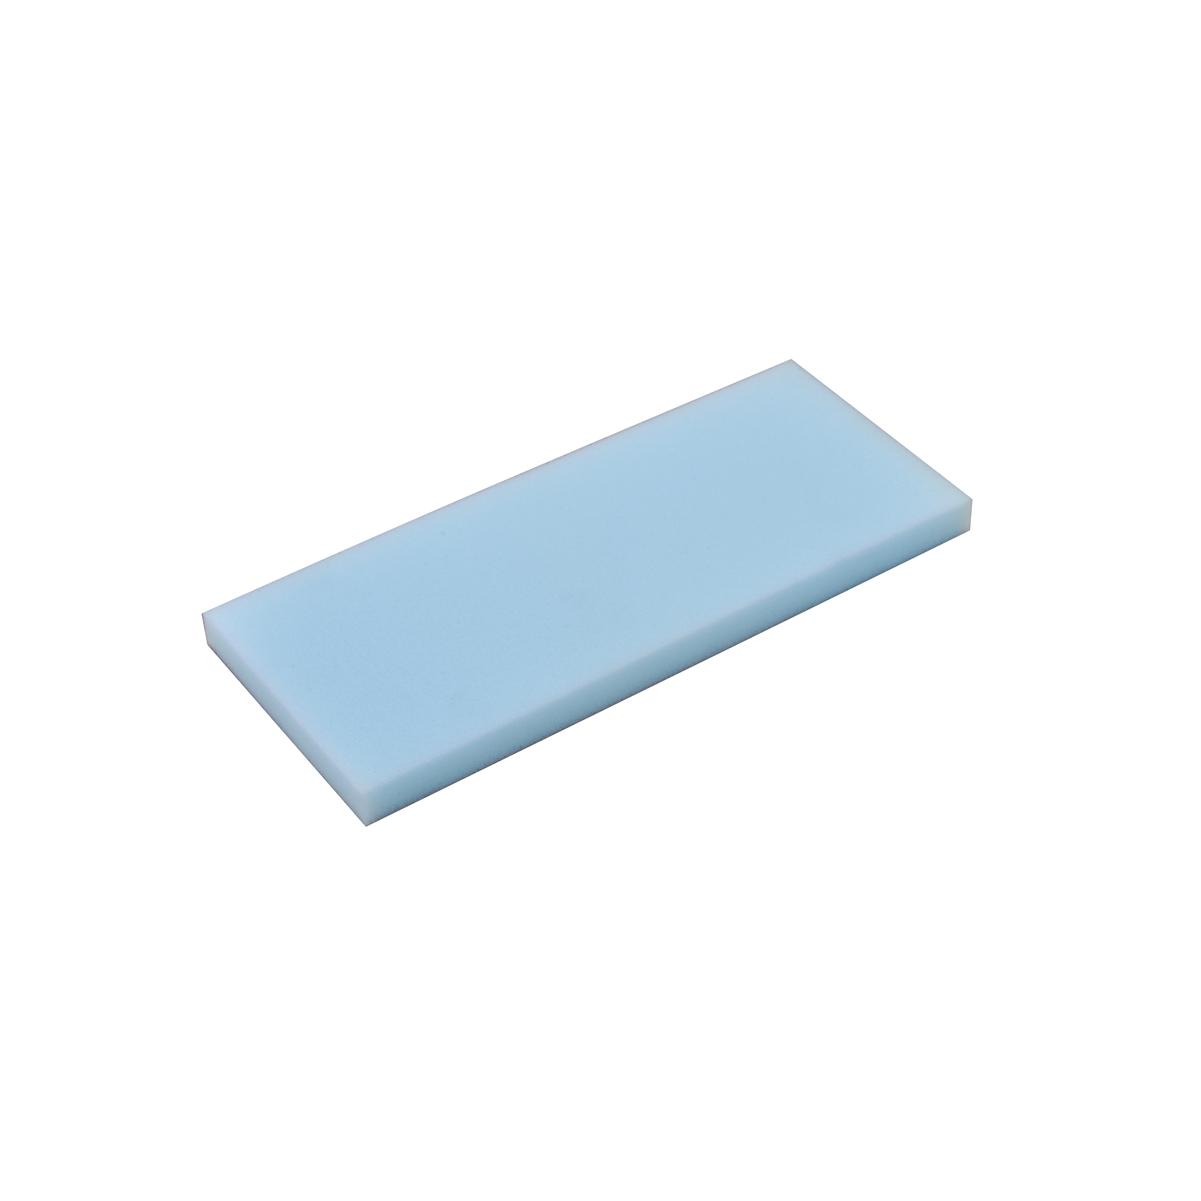 Professional Replacement Sponge 130mm x 300mm by Ox